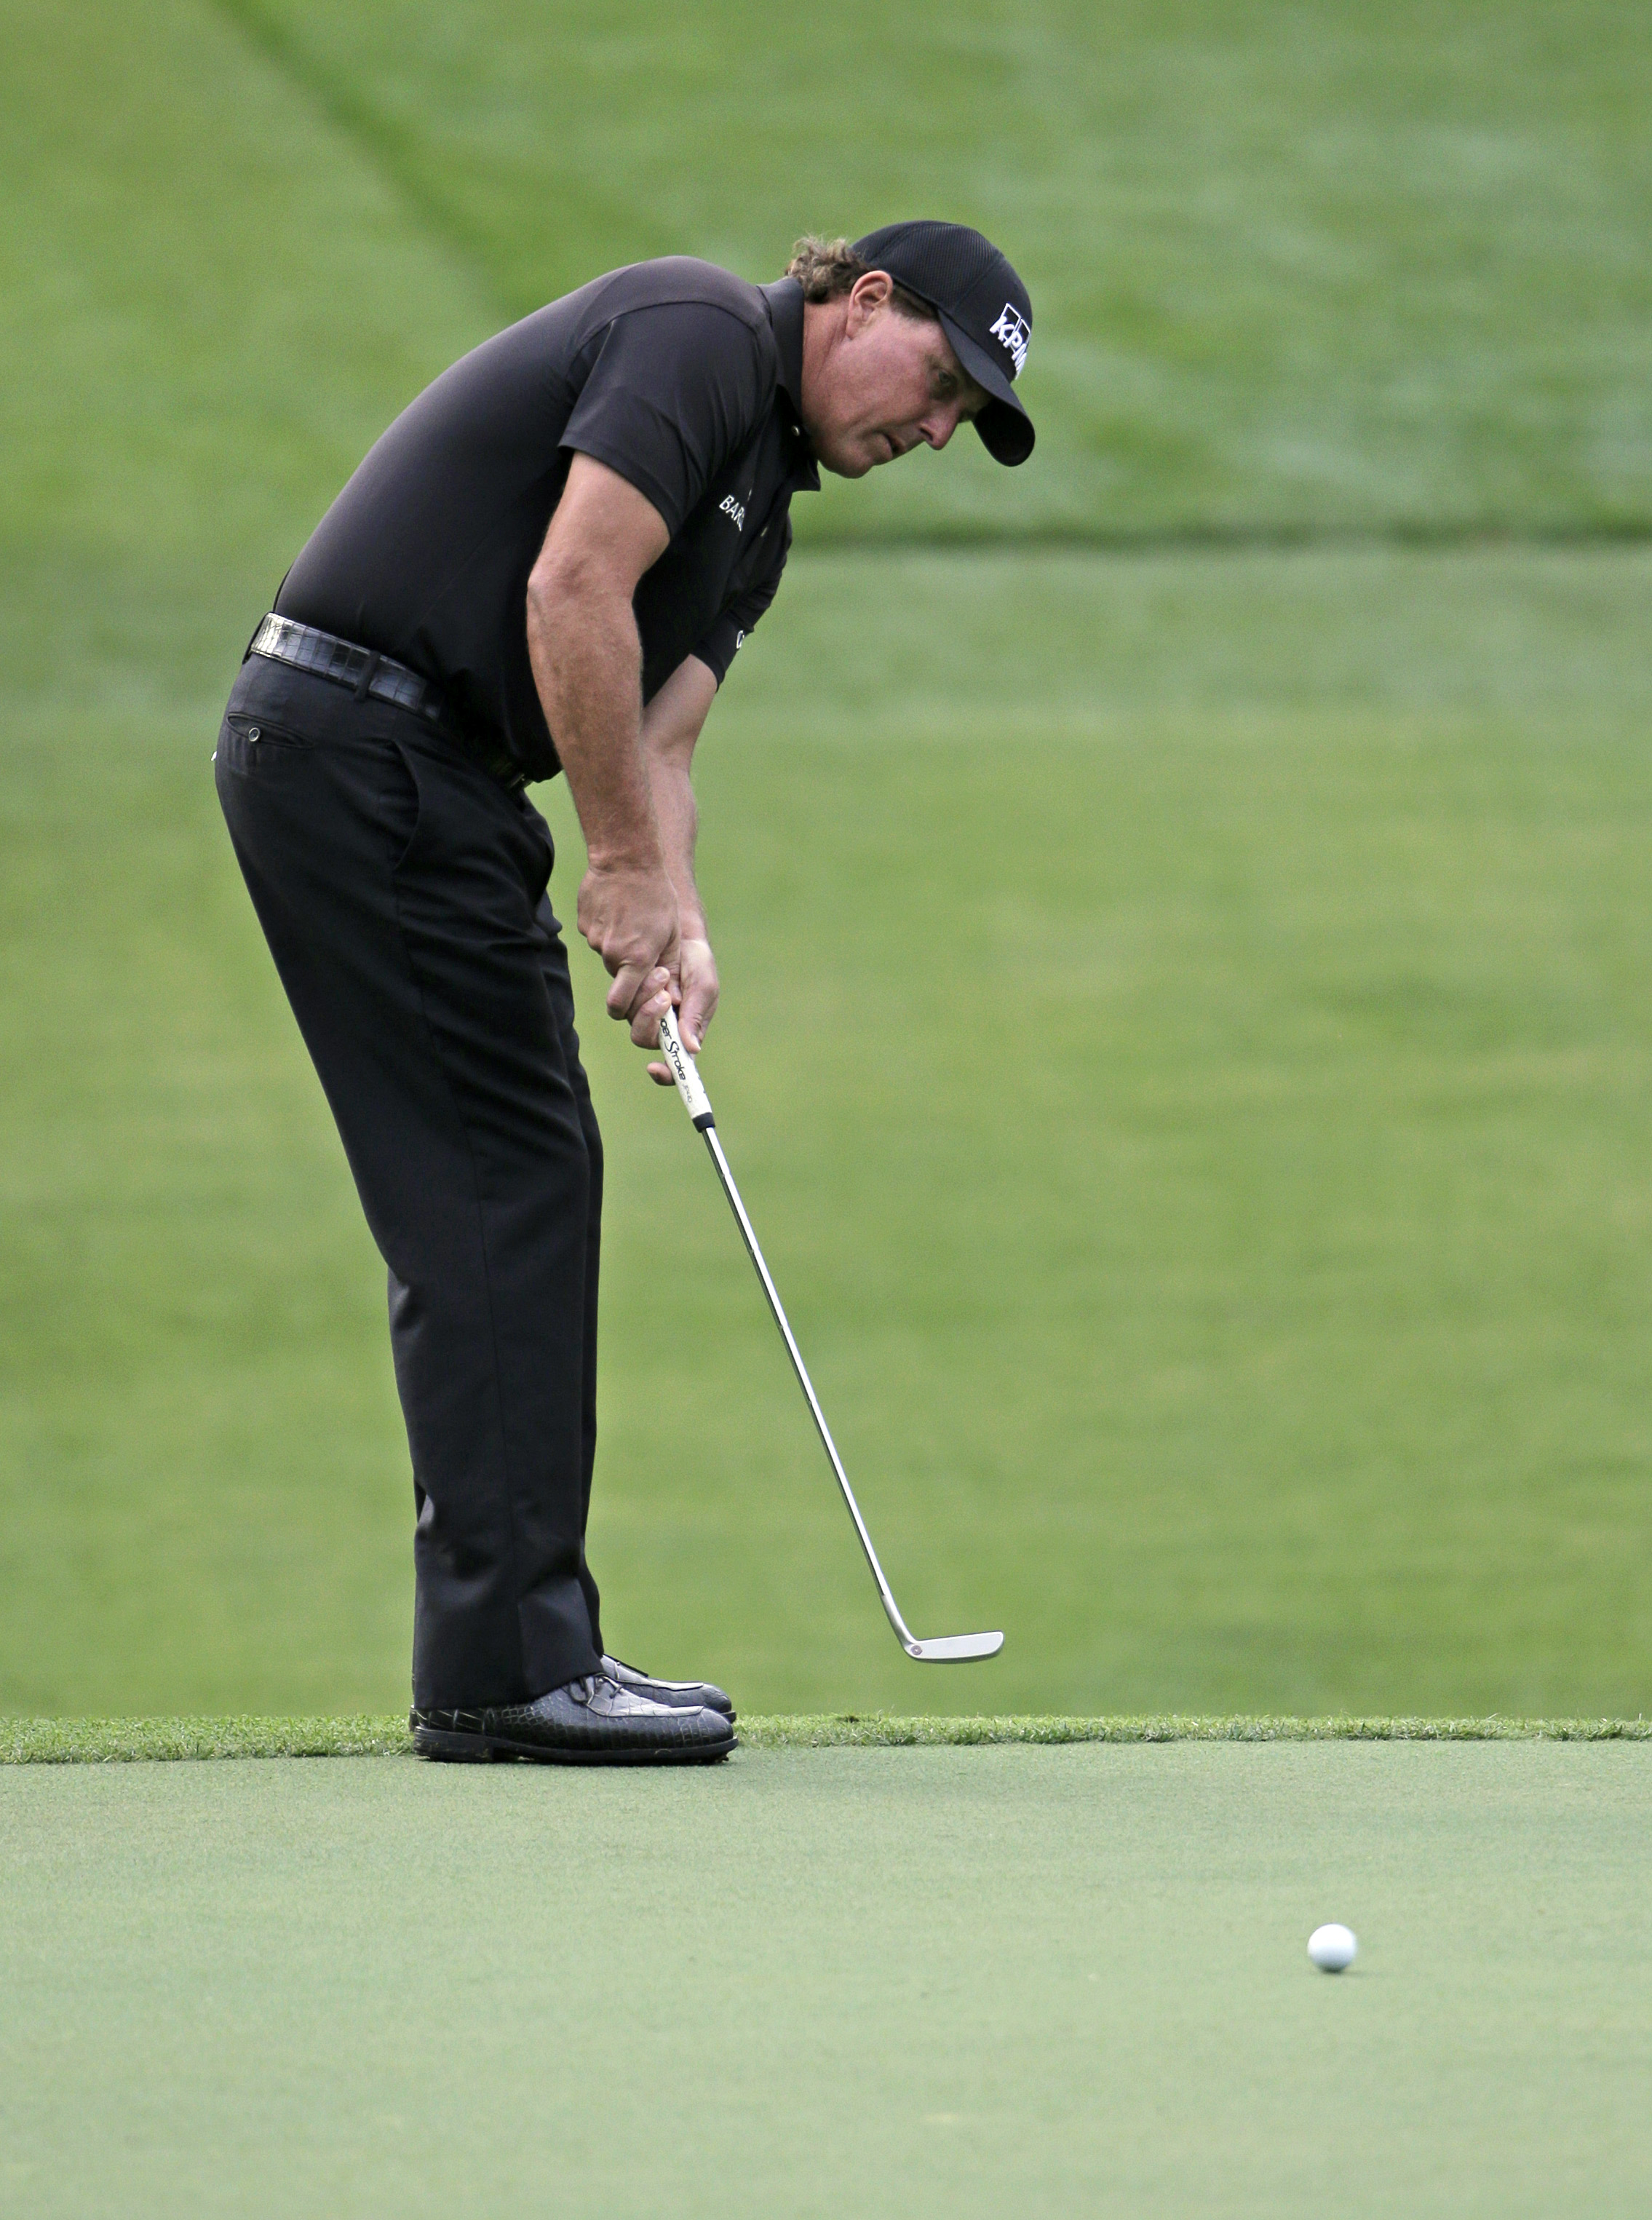 Phil Mickelson watches his putt on the second hole during the pro-am for the Wells Fargo Championship golf tournament at the Quail Hollow Club in Charlotte, N.C., Wednesday, May 13, 2015. (AP Photo/Chuck